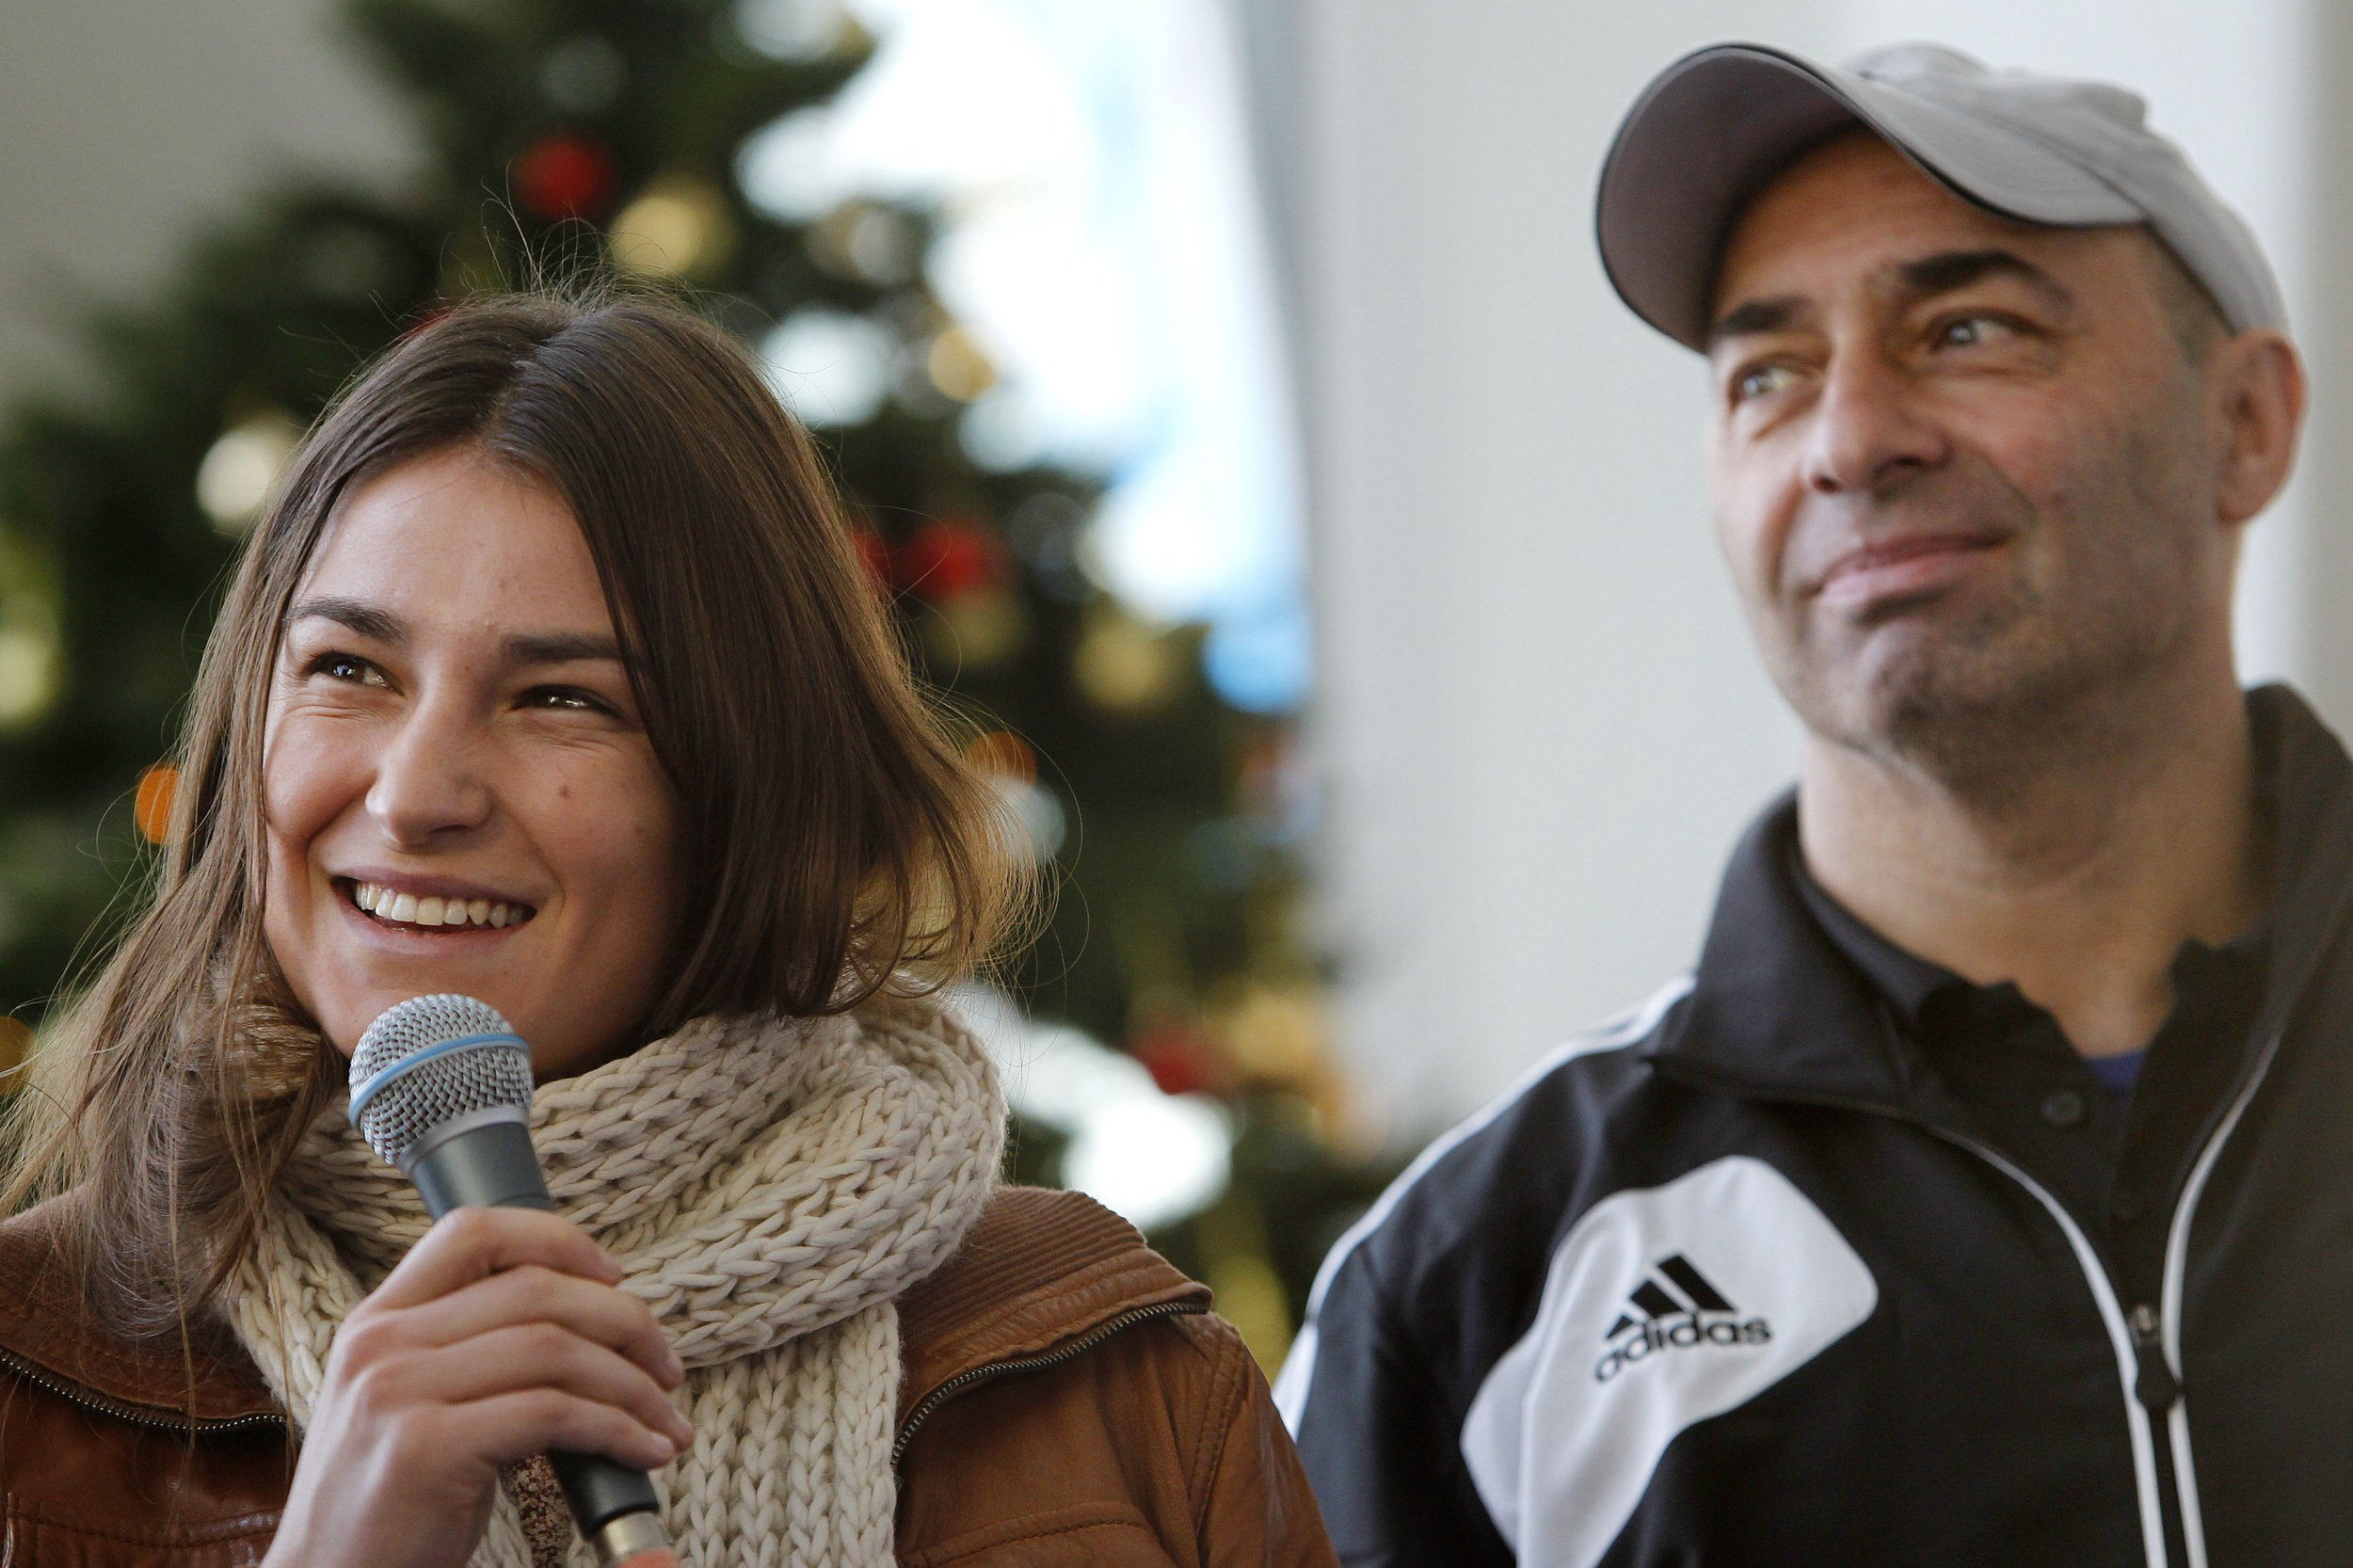 File photo dated 18/12/12 of boxing coach Pete Taylor with his daughter, Olympic gold medallist Katie Taylor. Mr Taylor has been named as one of three men shot at the Bray Boxing Club, Bray, Co. Wicklow. PRESS ASSOCIATION Photo. Issue date: Tuesday June 5, 2018. One man, aged 30, has died in the early morning shooting which left Mr Taylor and one other man injured. See PA story IRISH Shooting. Photo credit should read: Julien Behal/PA Wire